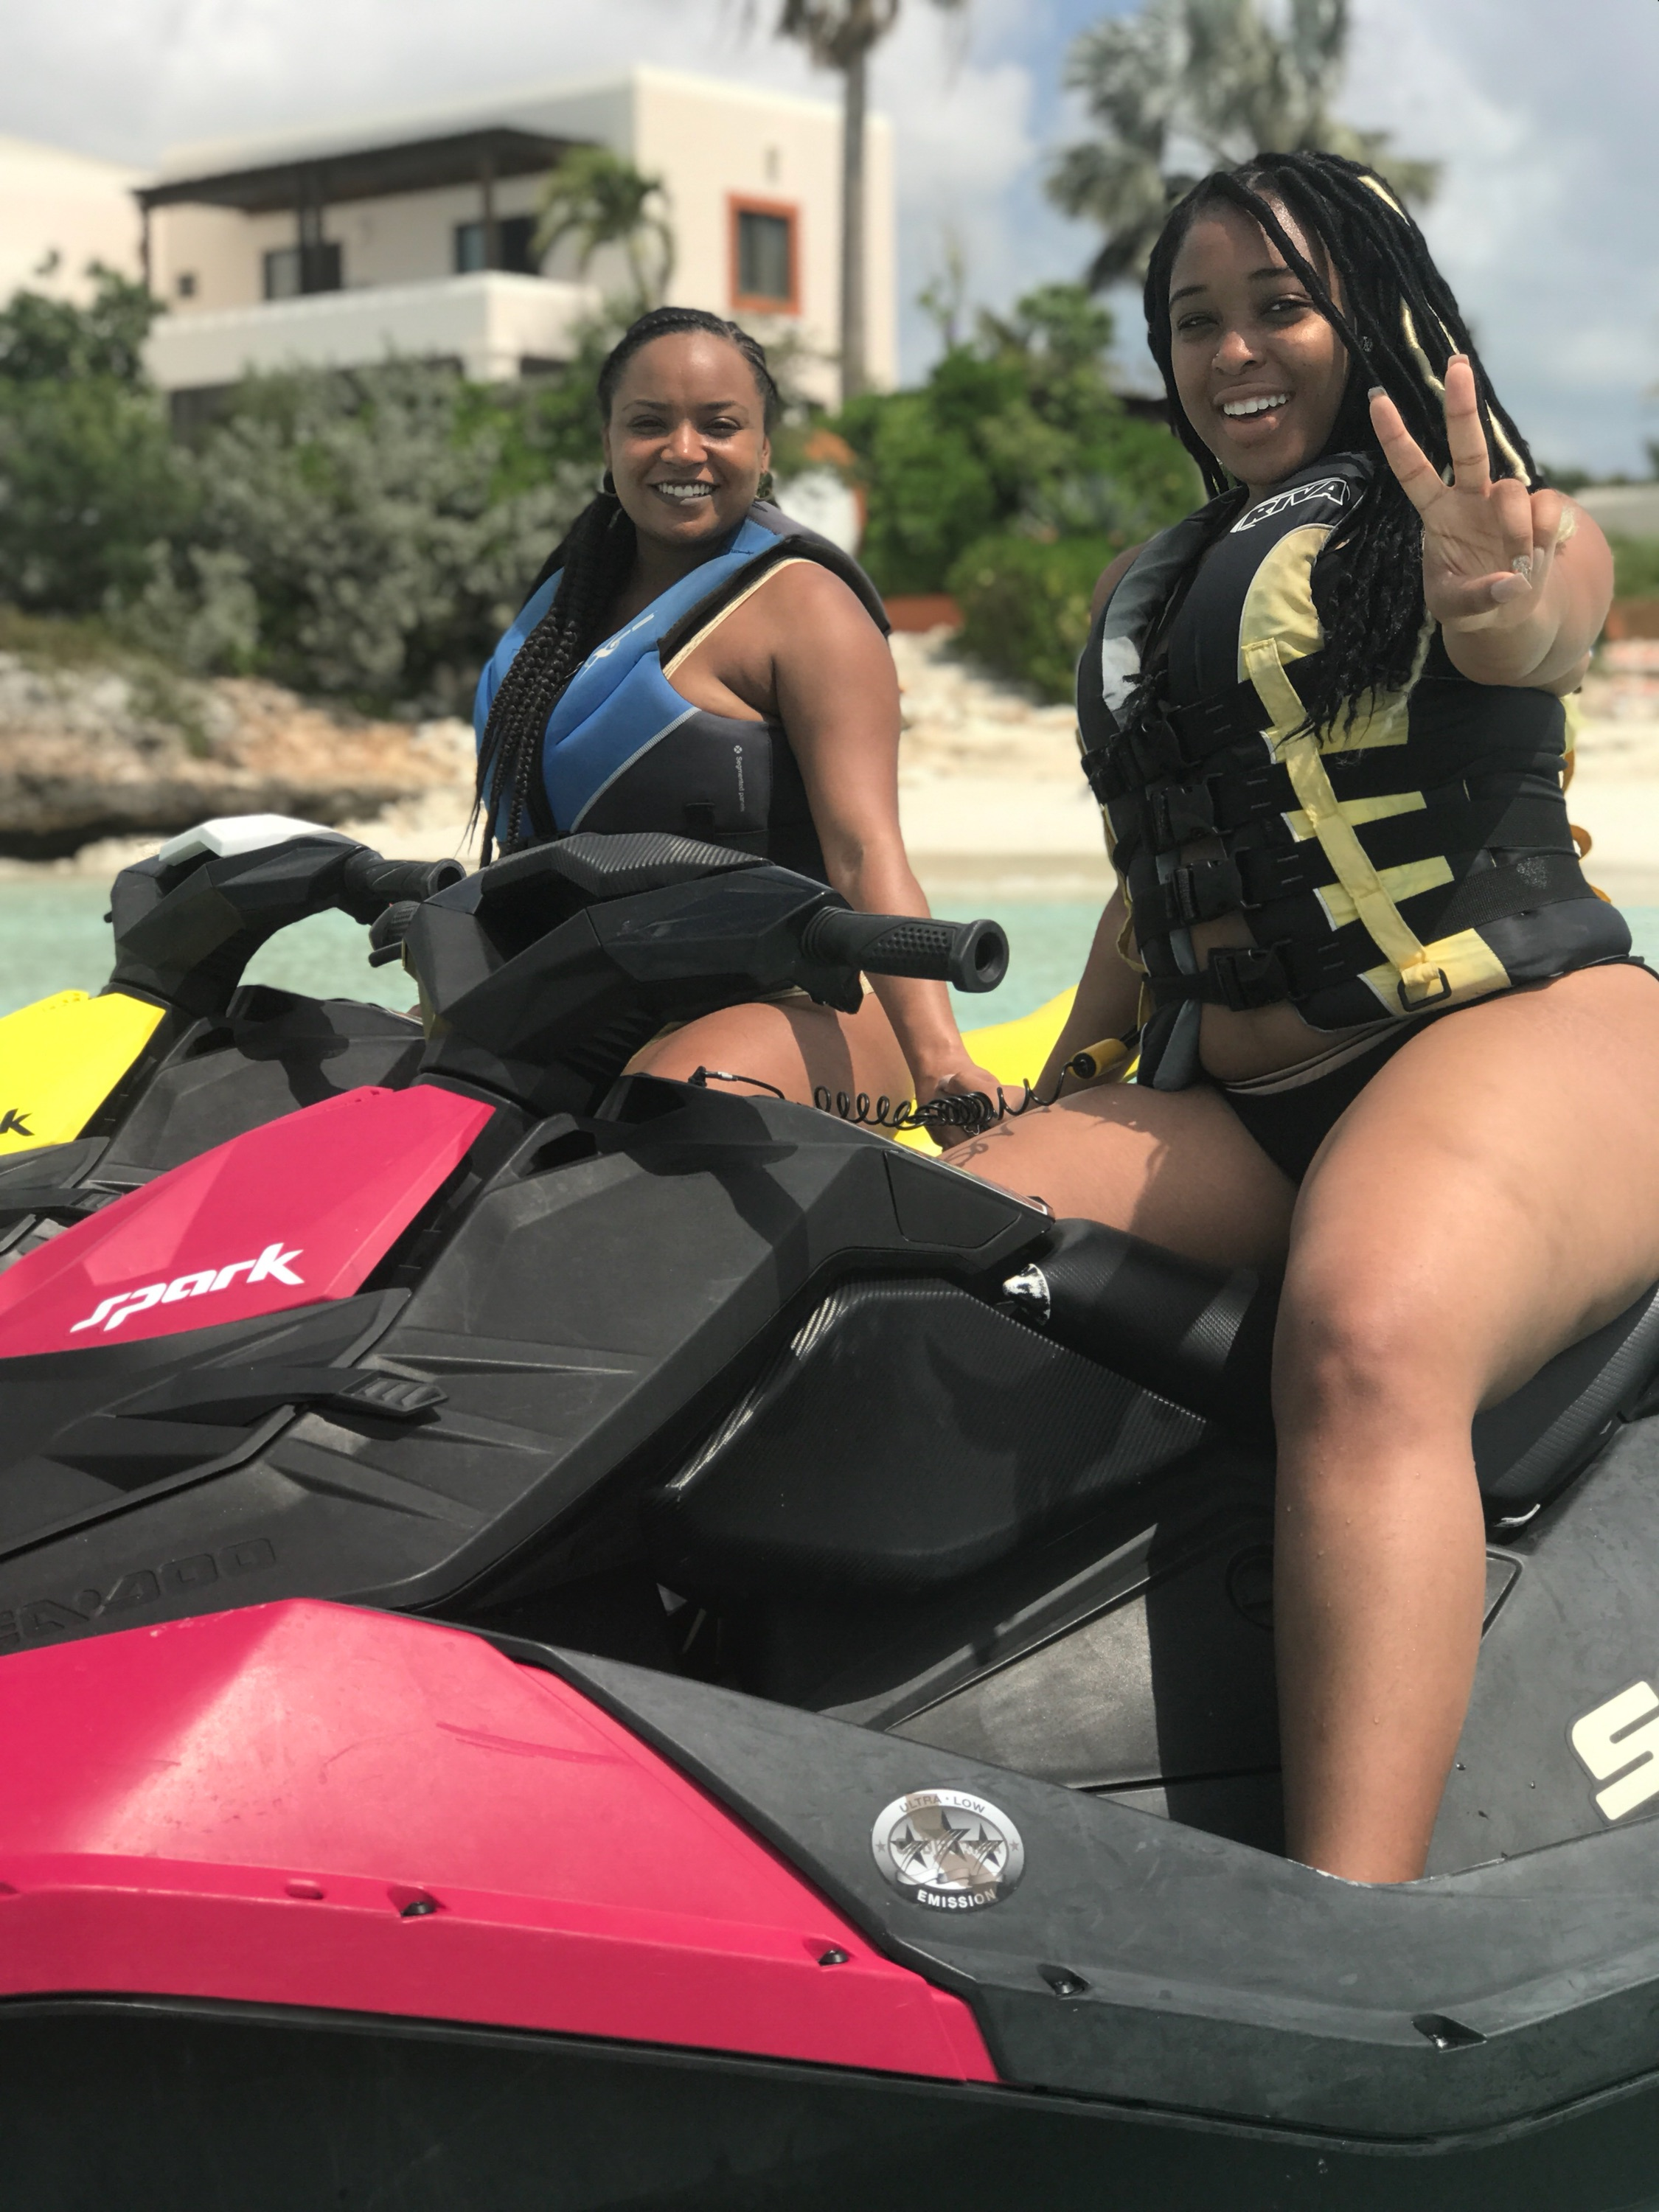 Jet skis and snap shot courtesy of Rent-A-Ski! Make sure you hit them up if you go!